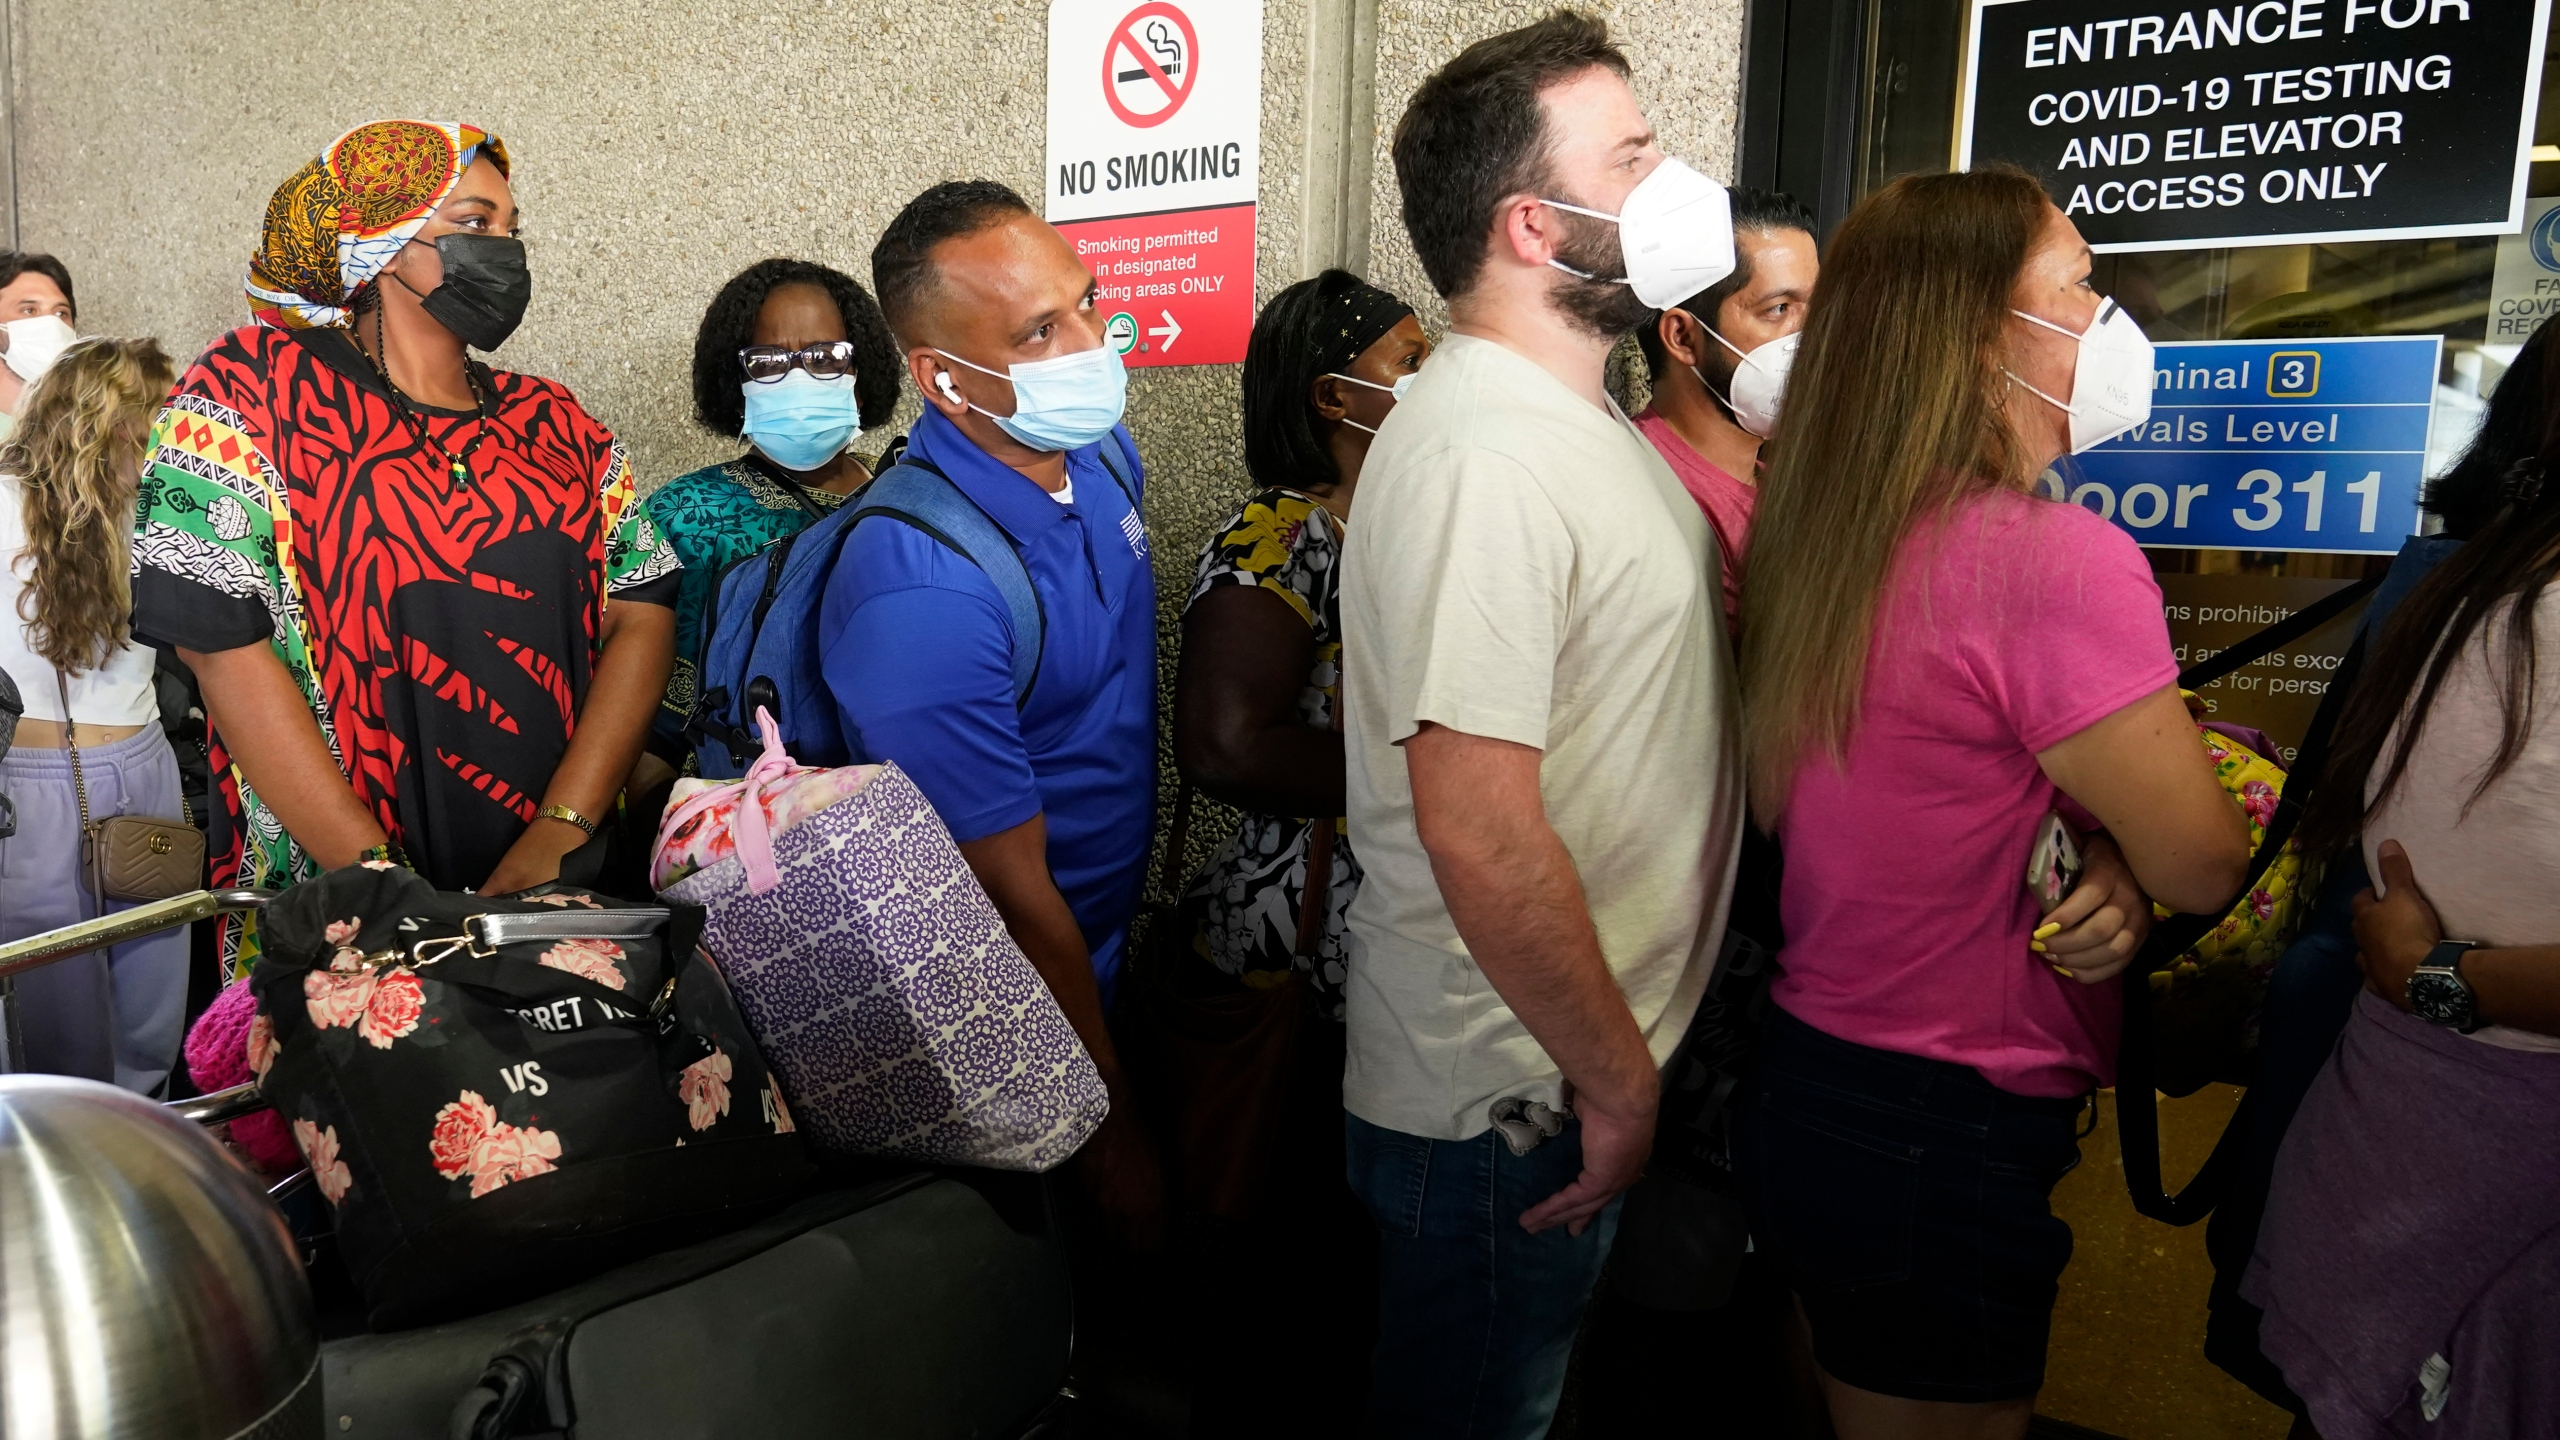 Passengers wait in a long line to get a COVID-19 test to travel overseas at Fort Lauderdale-Hollywood International Airport, Friday, Aug. 6, 2021, in Fort Lauderdale, Fla. (AP Photo/Marta Lavandier)